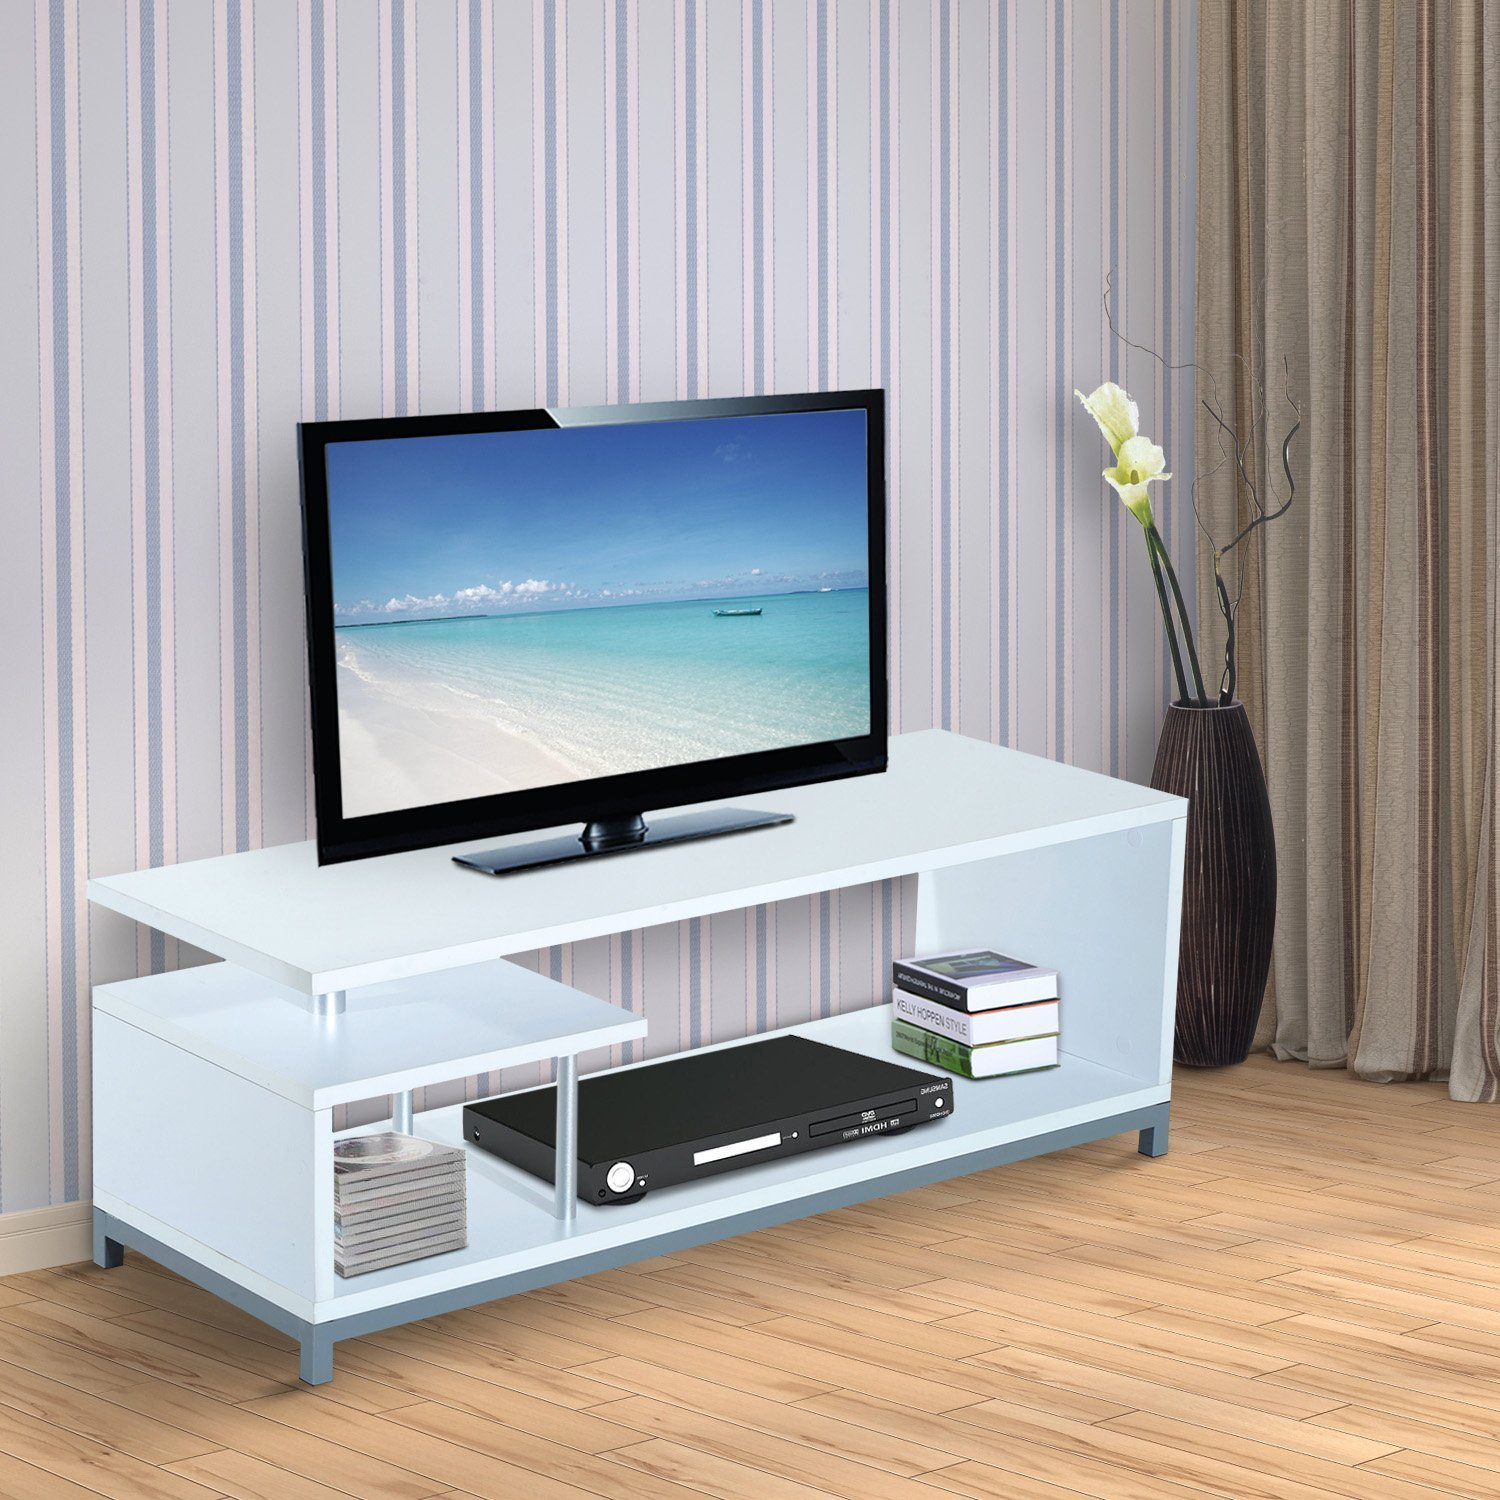 Muebles Modernos Para Tv Led Us 132 45 Homcom Mueble Para Televisor Con Soporte Moderno De Tv 114x40x40 5cm Mesa Tv Forma G 2 Color Blanco In Tv Stands From Furniture On